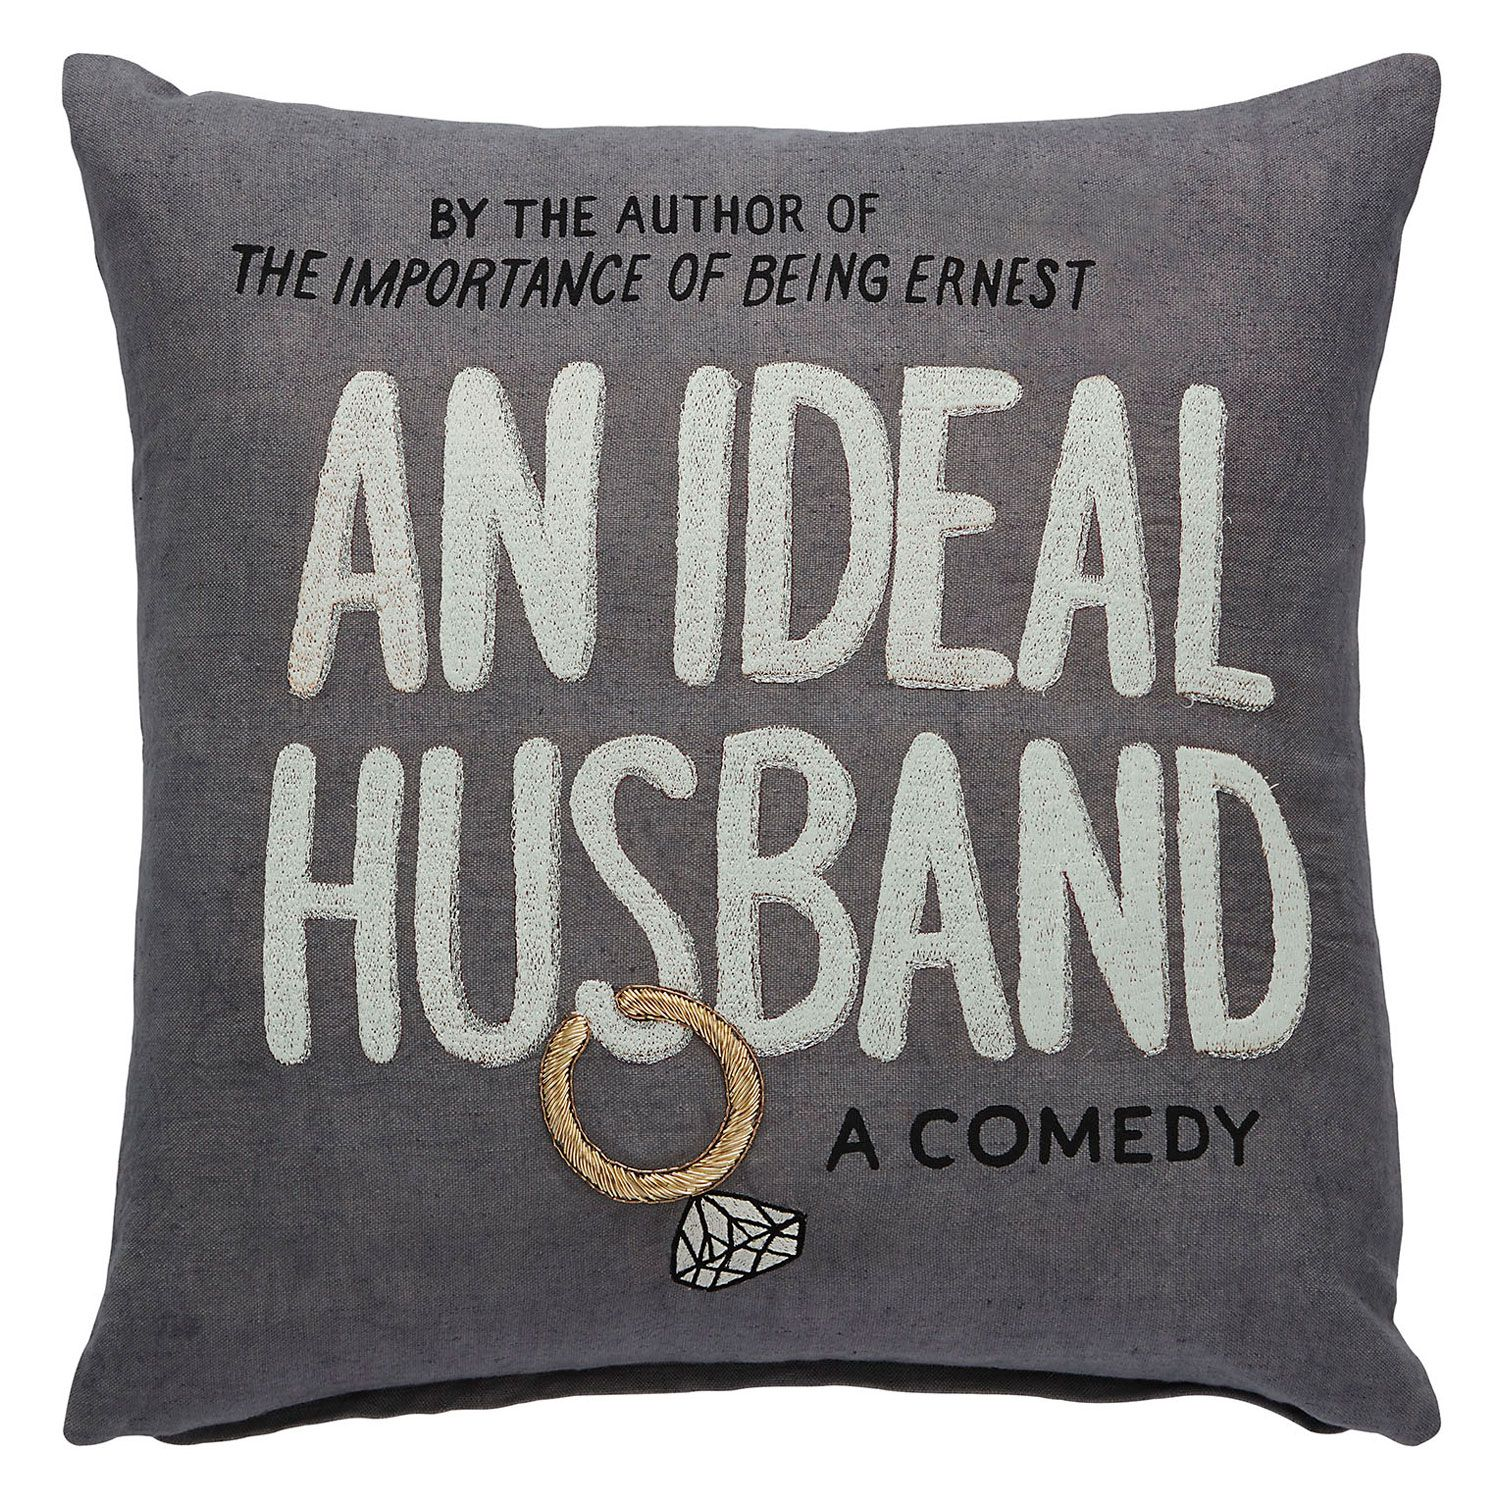 x pillow pillows texnoklimat bed com husband wonderful